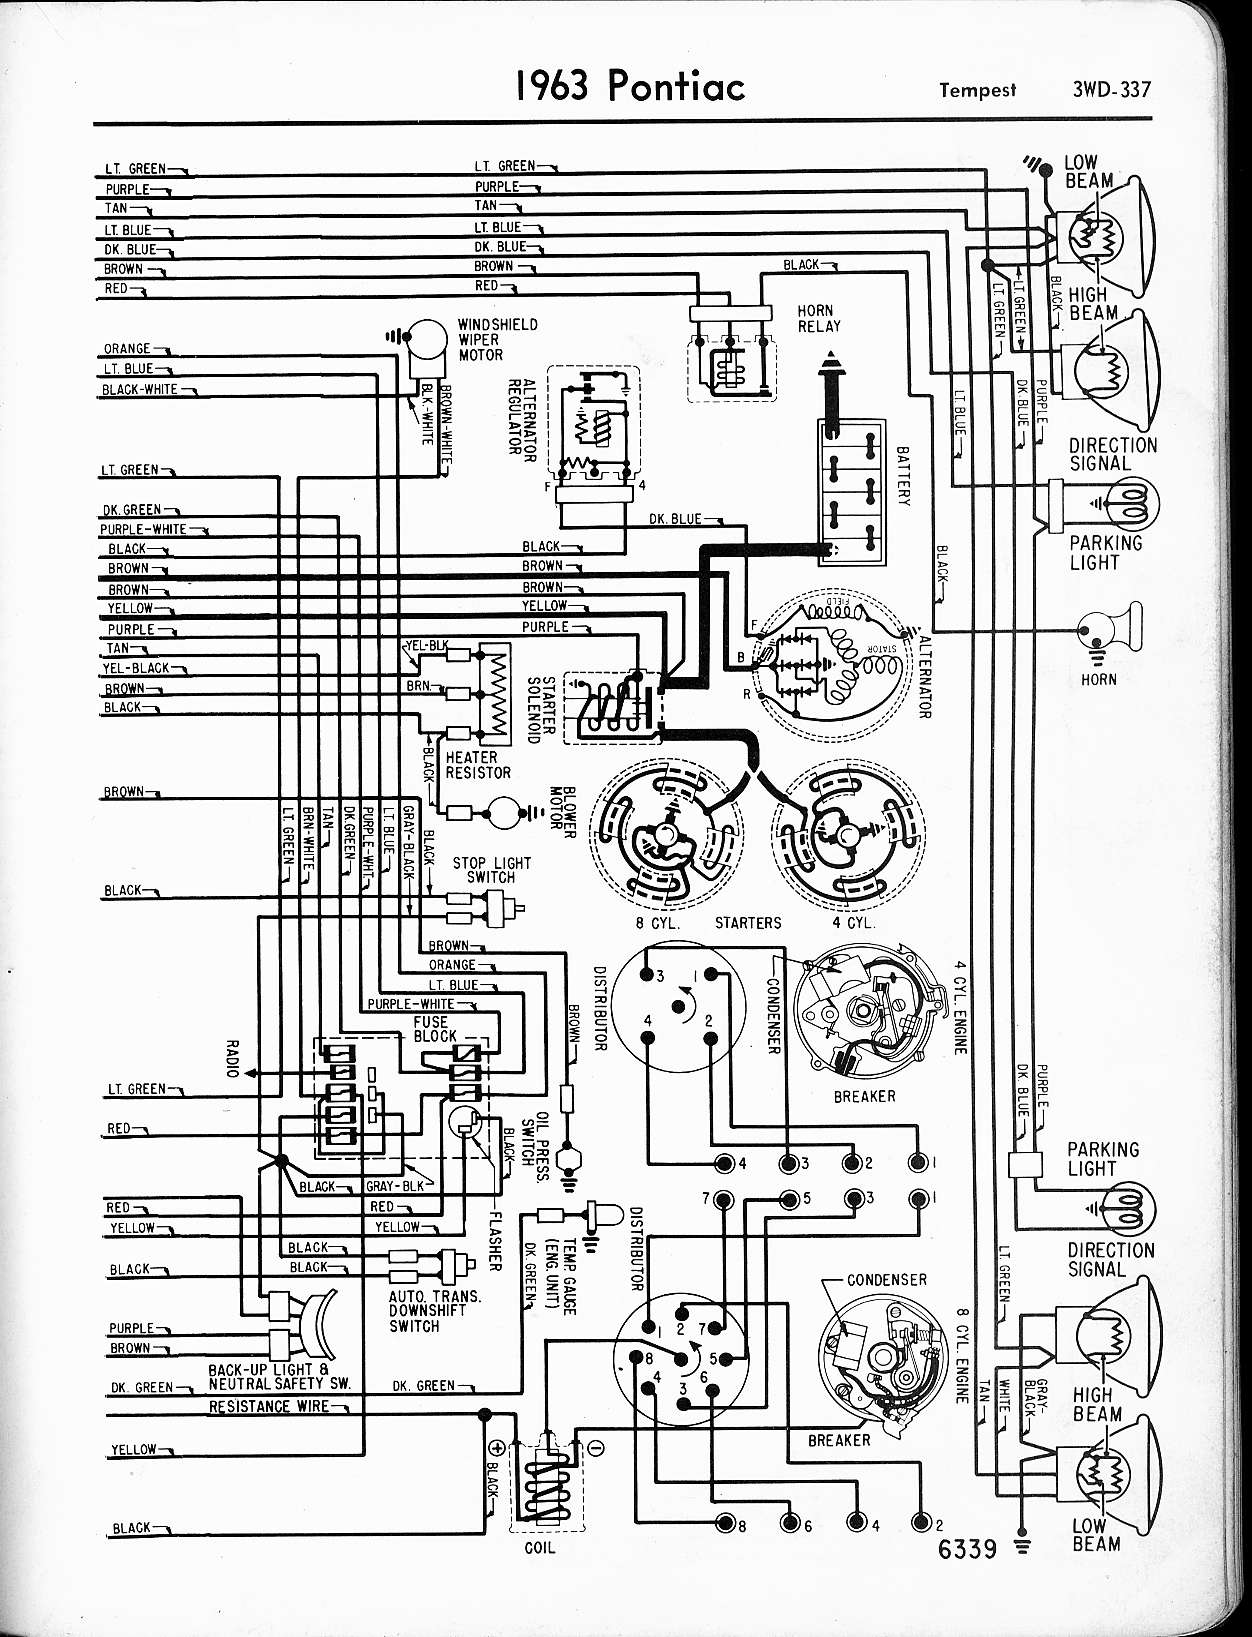 1957 Pontiac Wiring Diagram | Wiring Diagram on 1963 pontiac exhaust system, 1963 pontiac interior, 1963 pontiac transaxle, 1963 pontiac quarter panels,